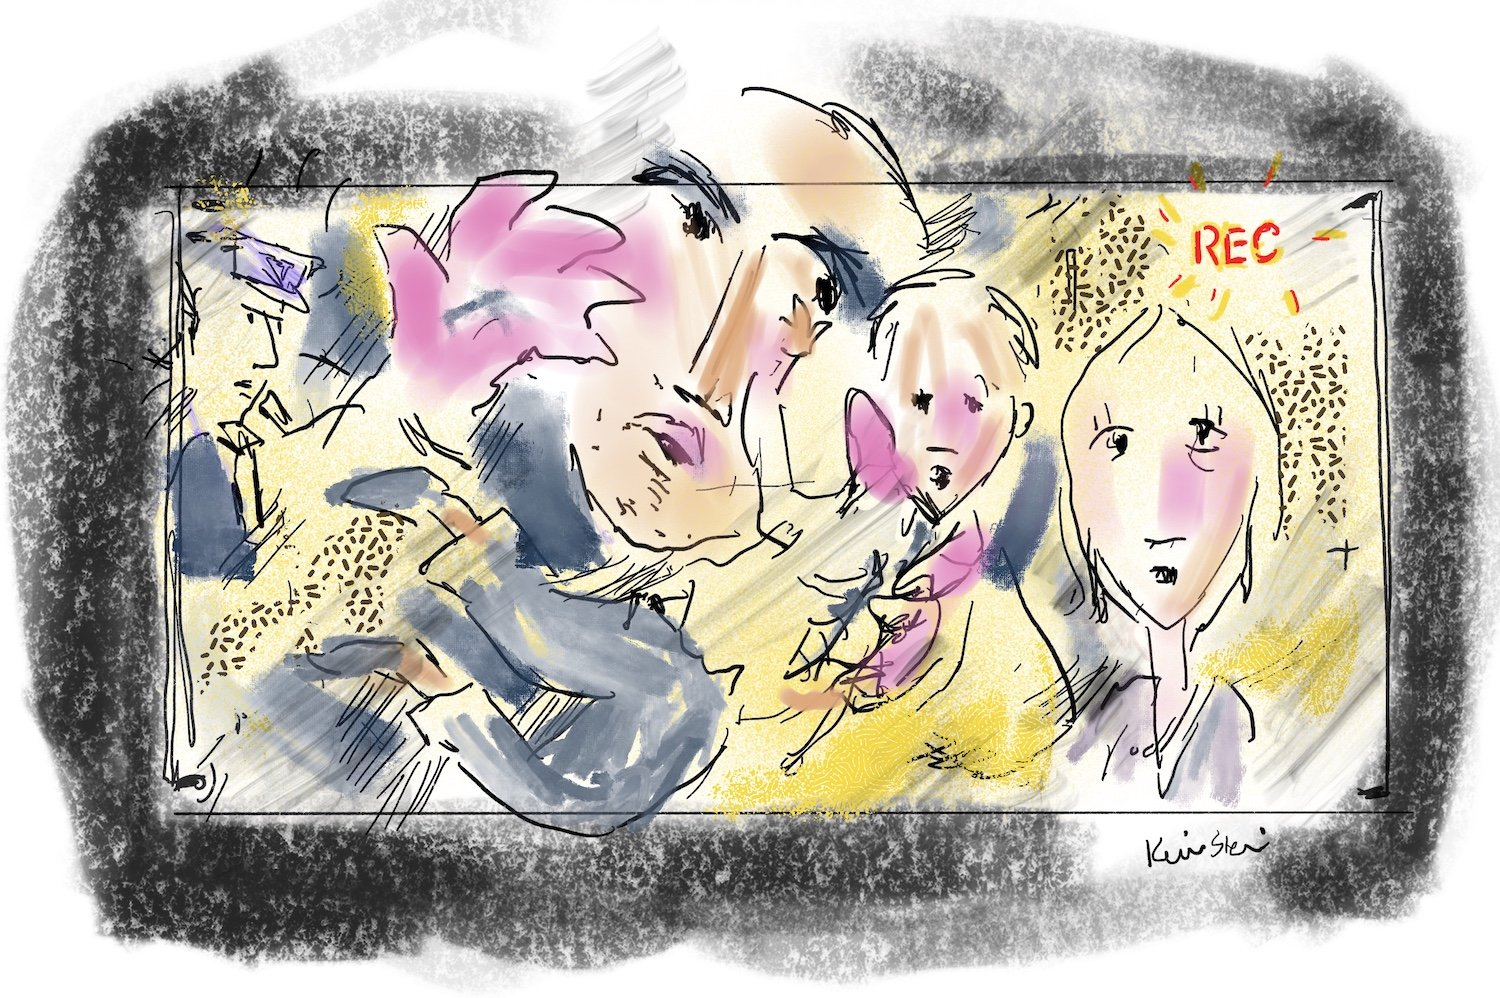 An illustration with four sketchy figures inside a video camera's frame.